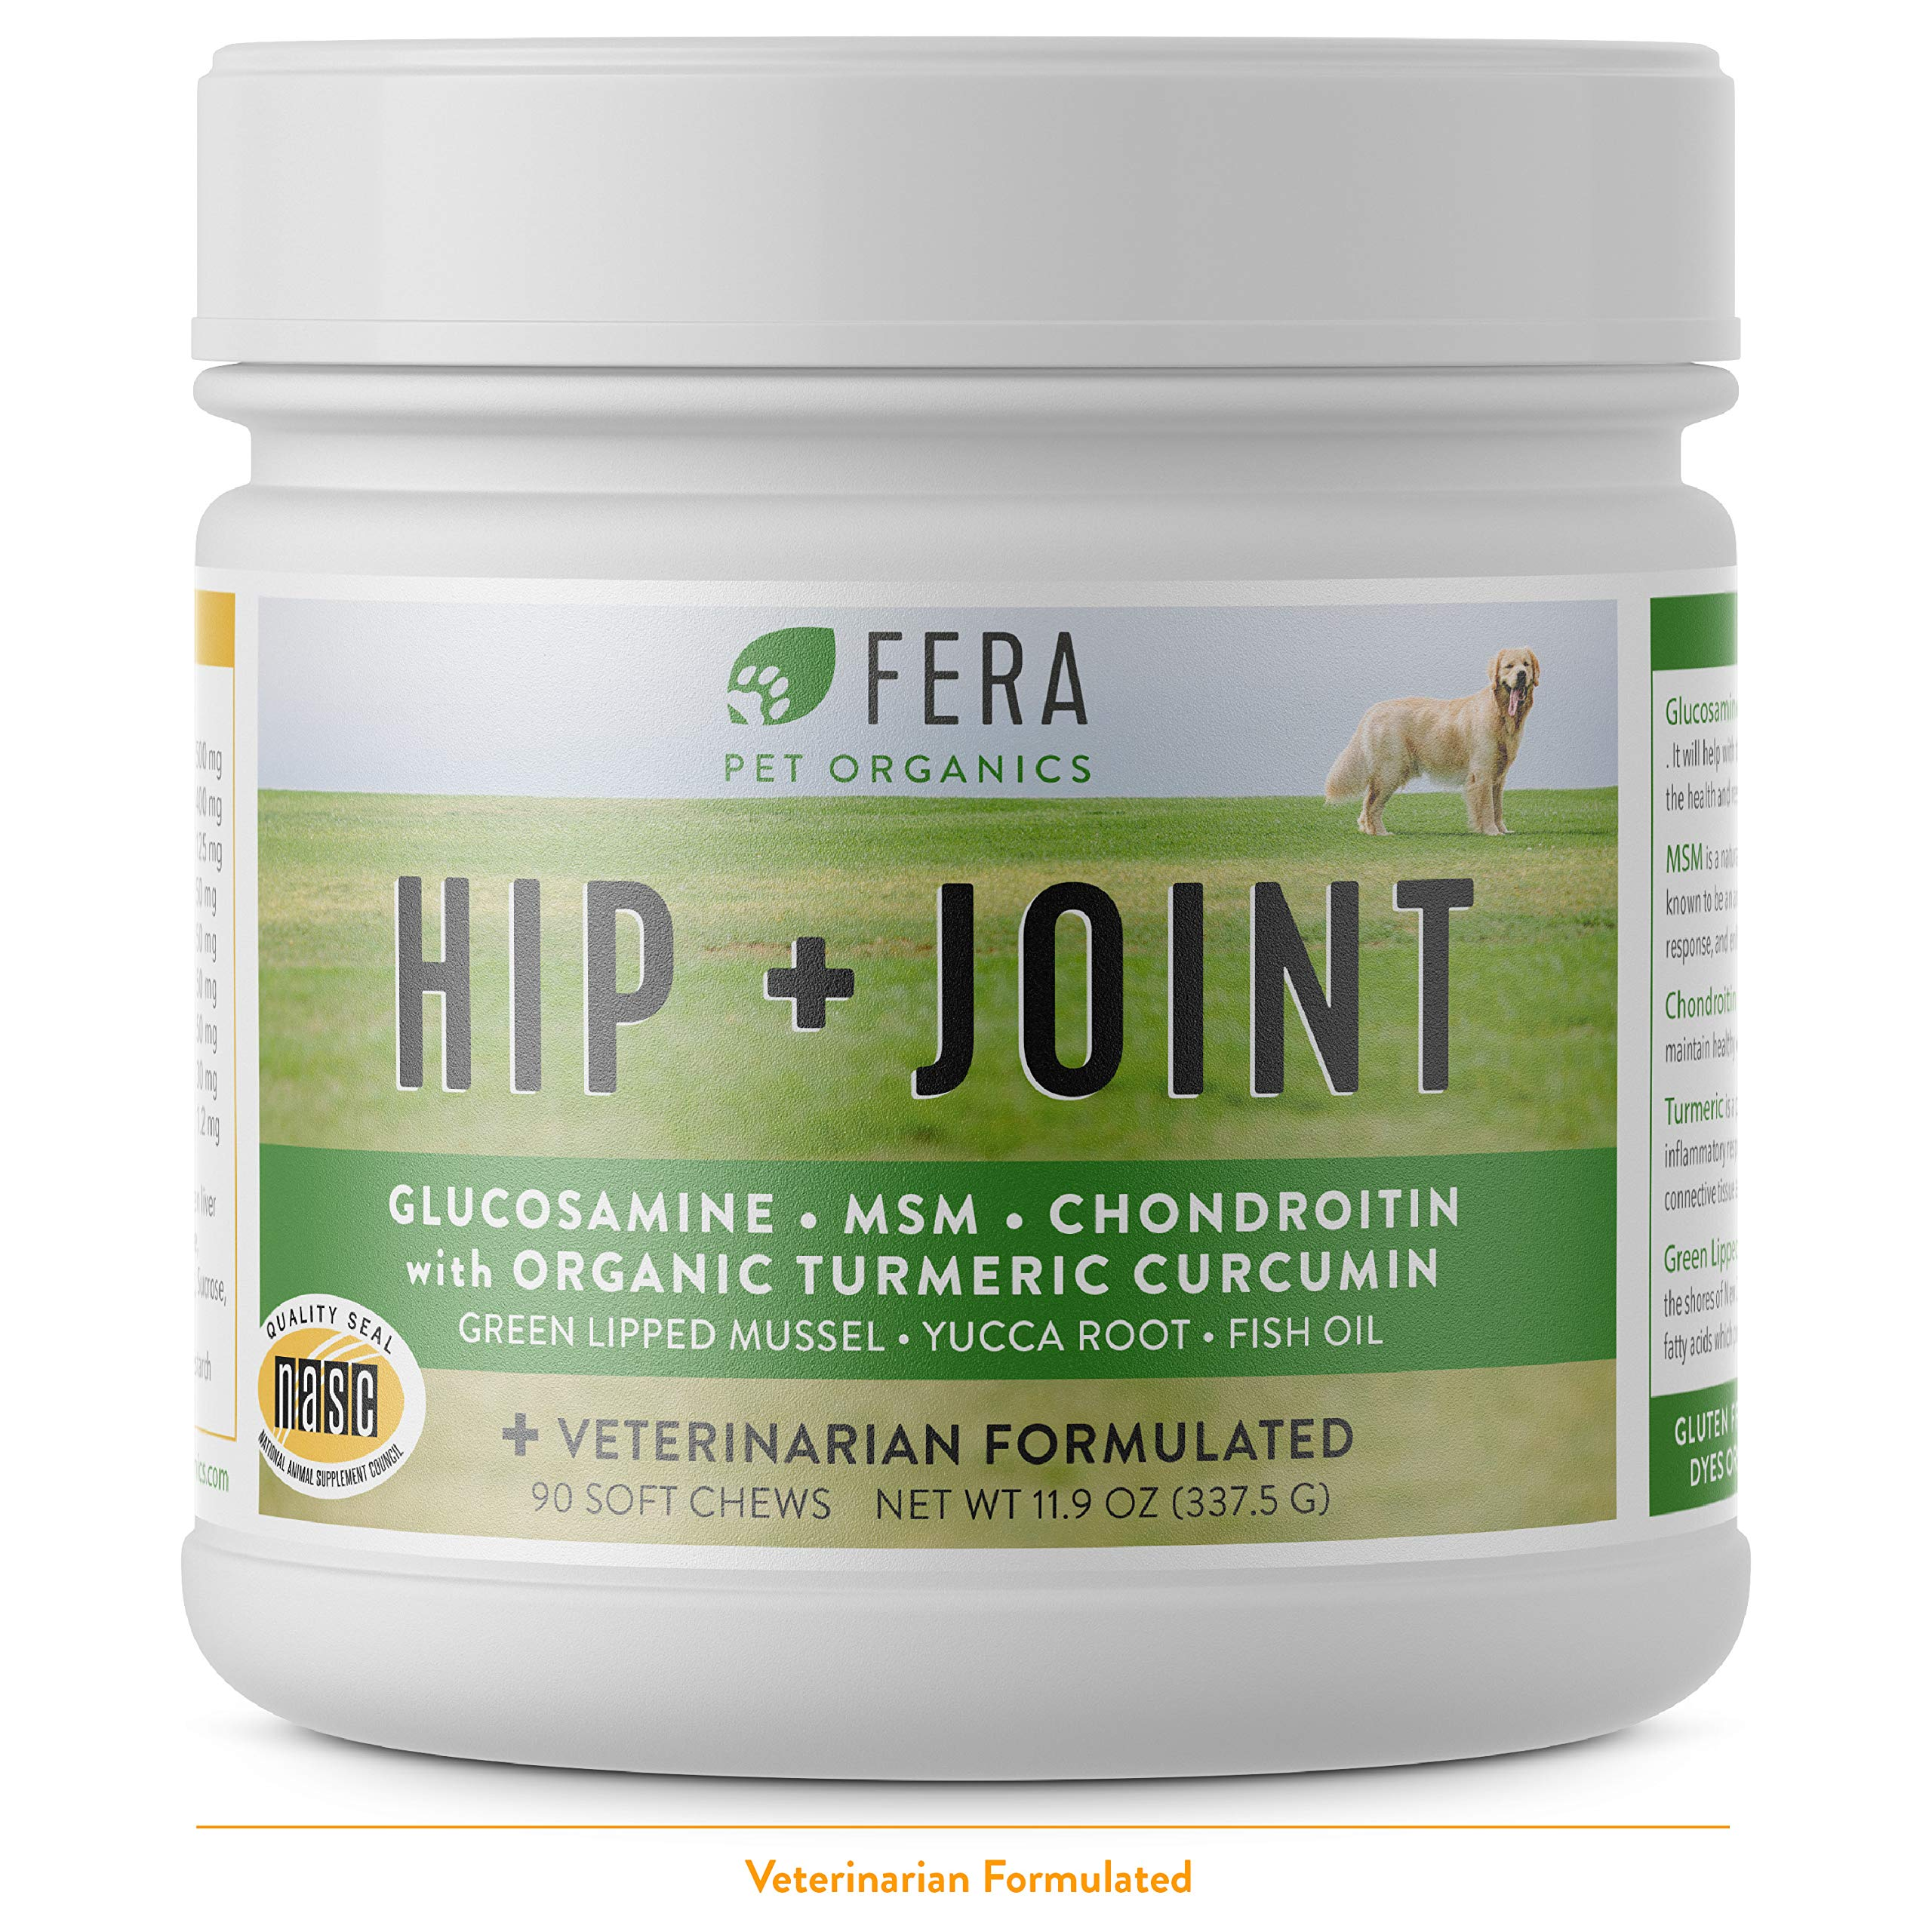 FERA PET ORGANICS Glucosamine Chondroitin Chews for Dogs - All Natural Hip and Joint Supplement with MSM, Omega-3, Vitamin C, Hyaluronic Acid, Organic Turmeric - Advanced Max-Strength Vet Formulated